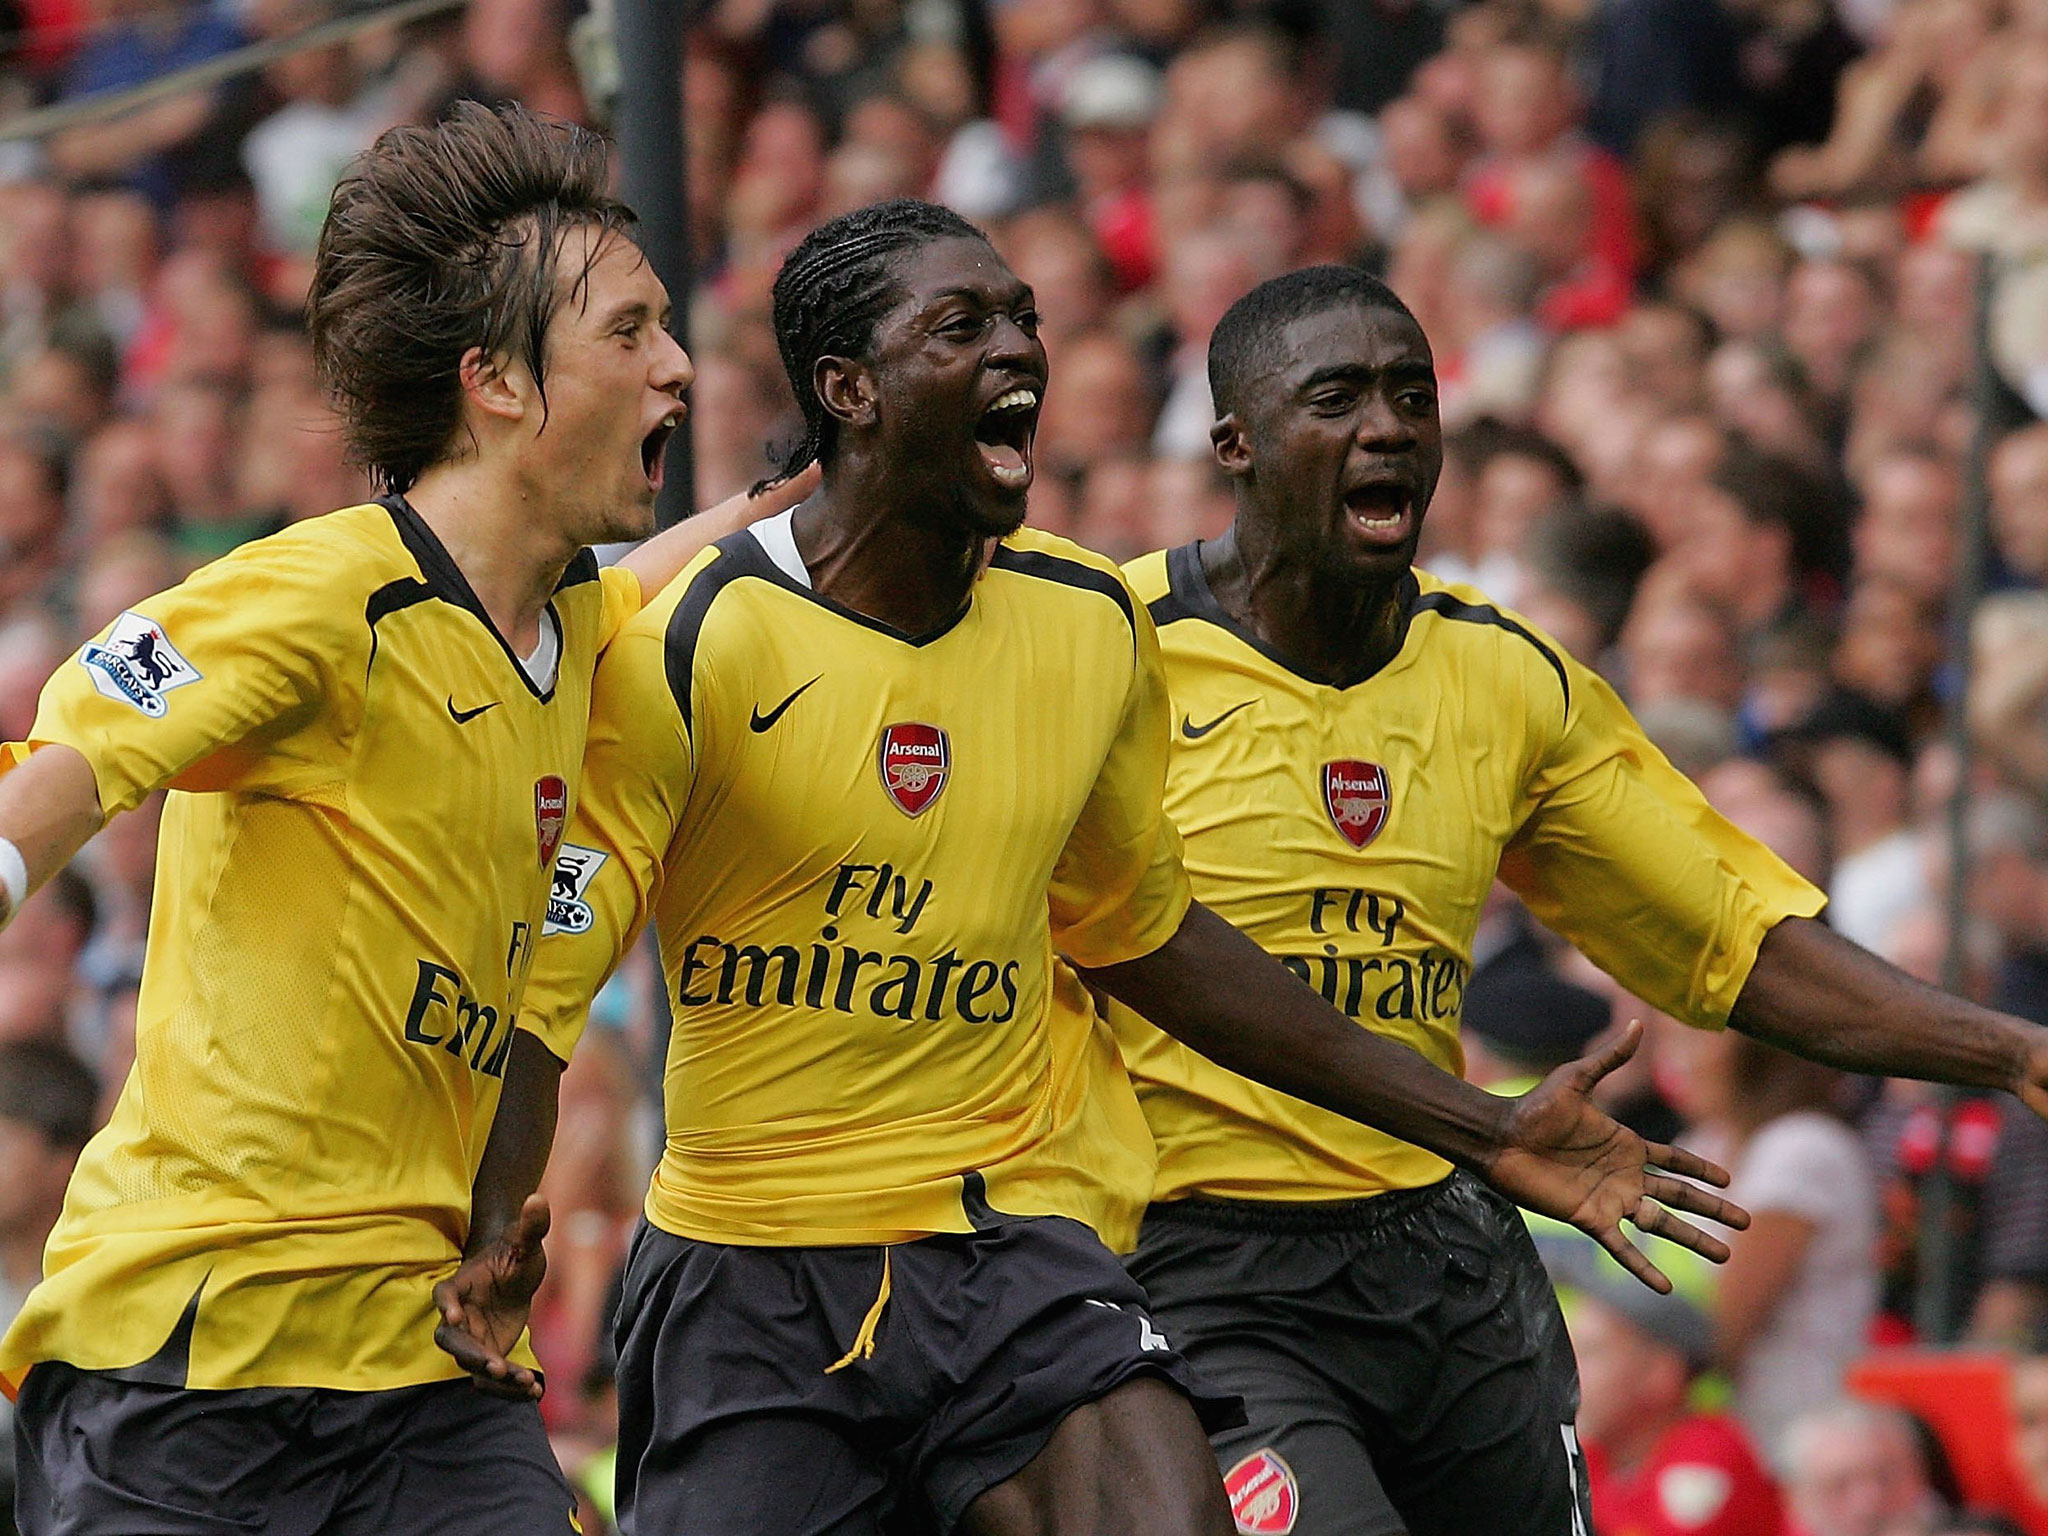 Emmanuel Adebayor's goal was the one and only in a slender 1-0 victory at Old Trafford, back in September 2006. Since then, Arsenal haven't beaten United away from home in the league. (Picture source: The Independent)